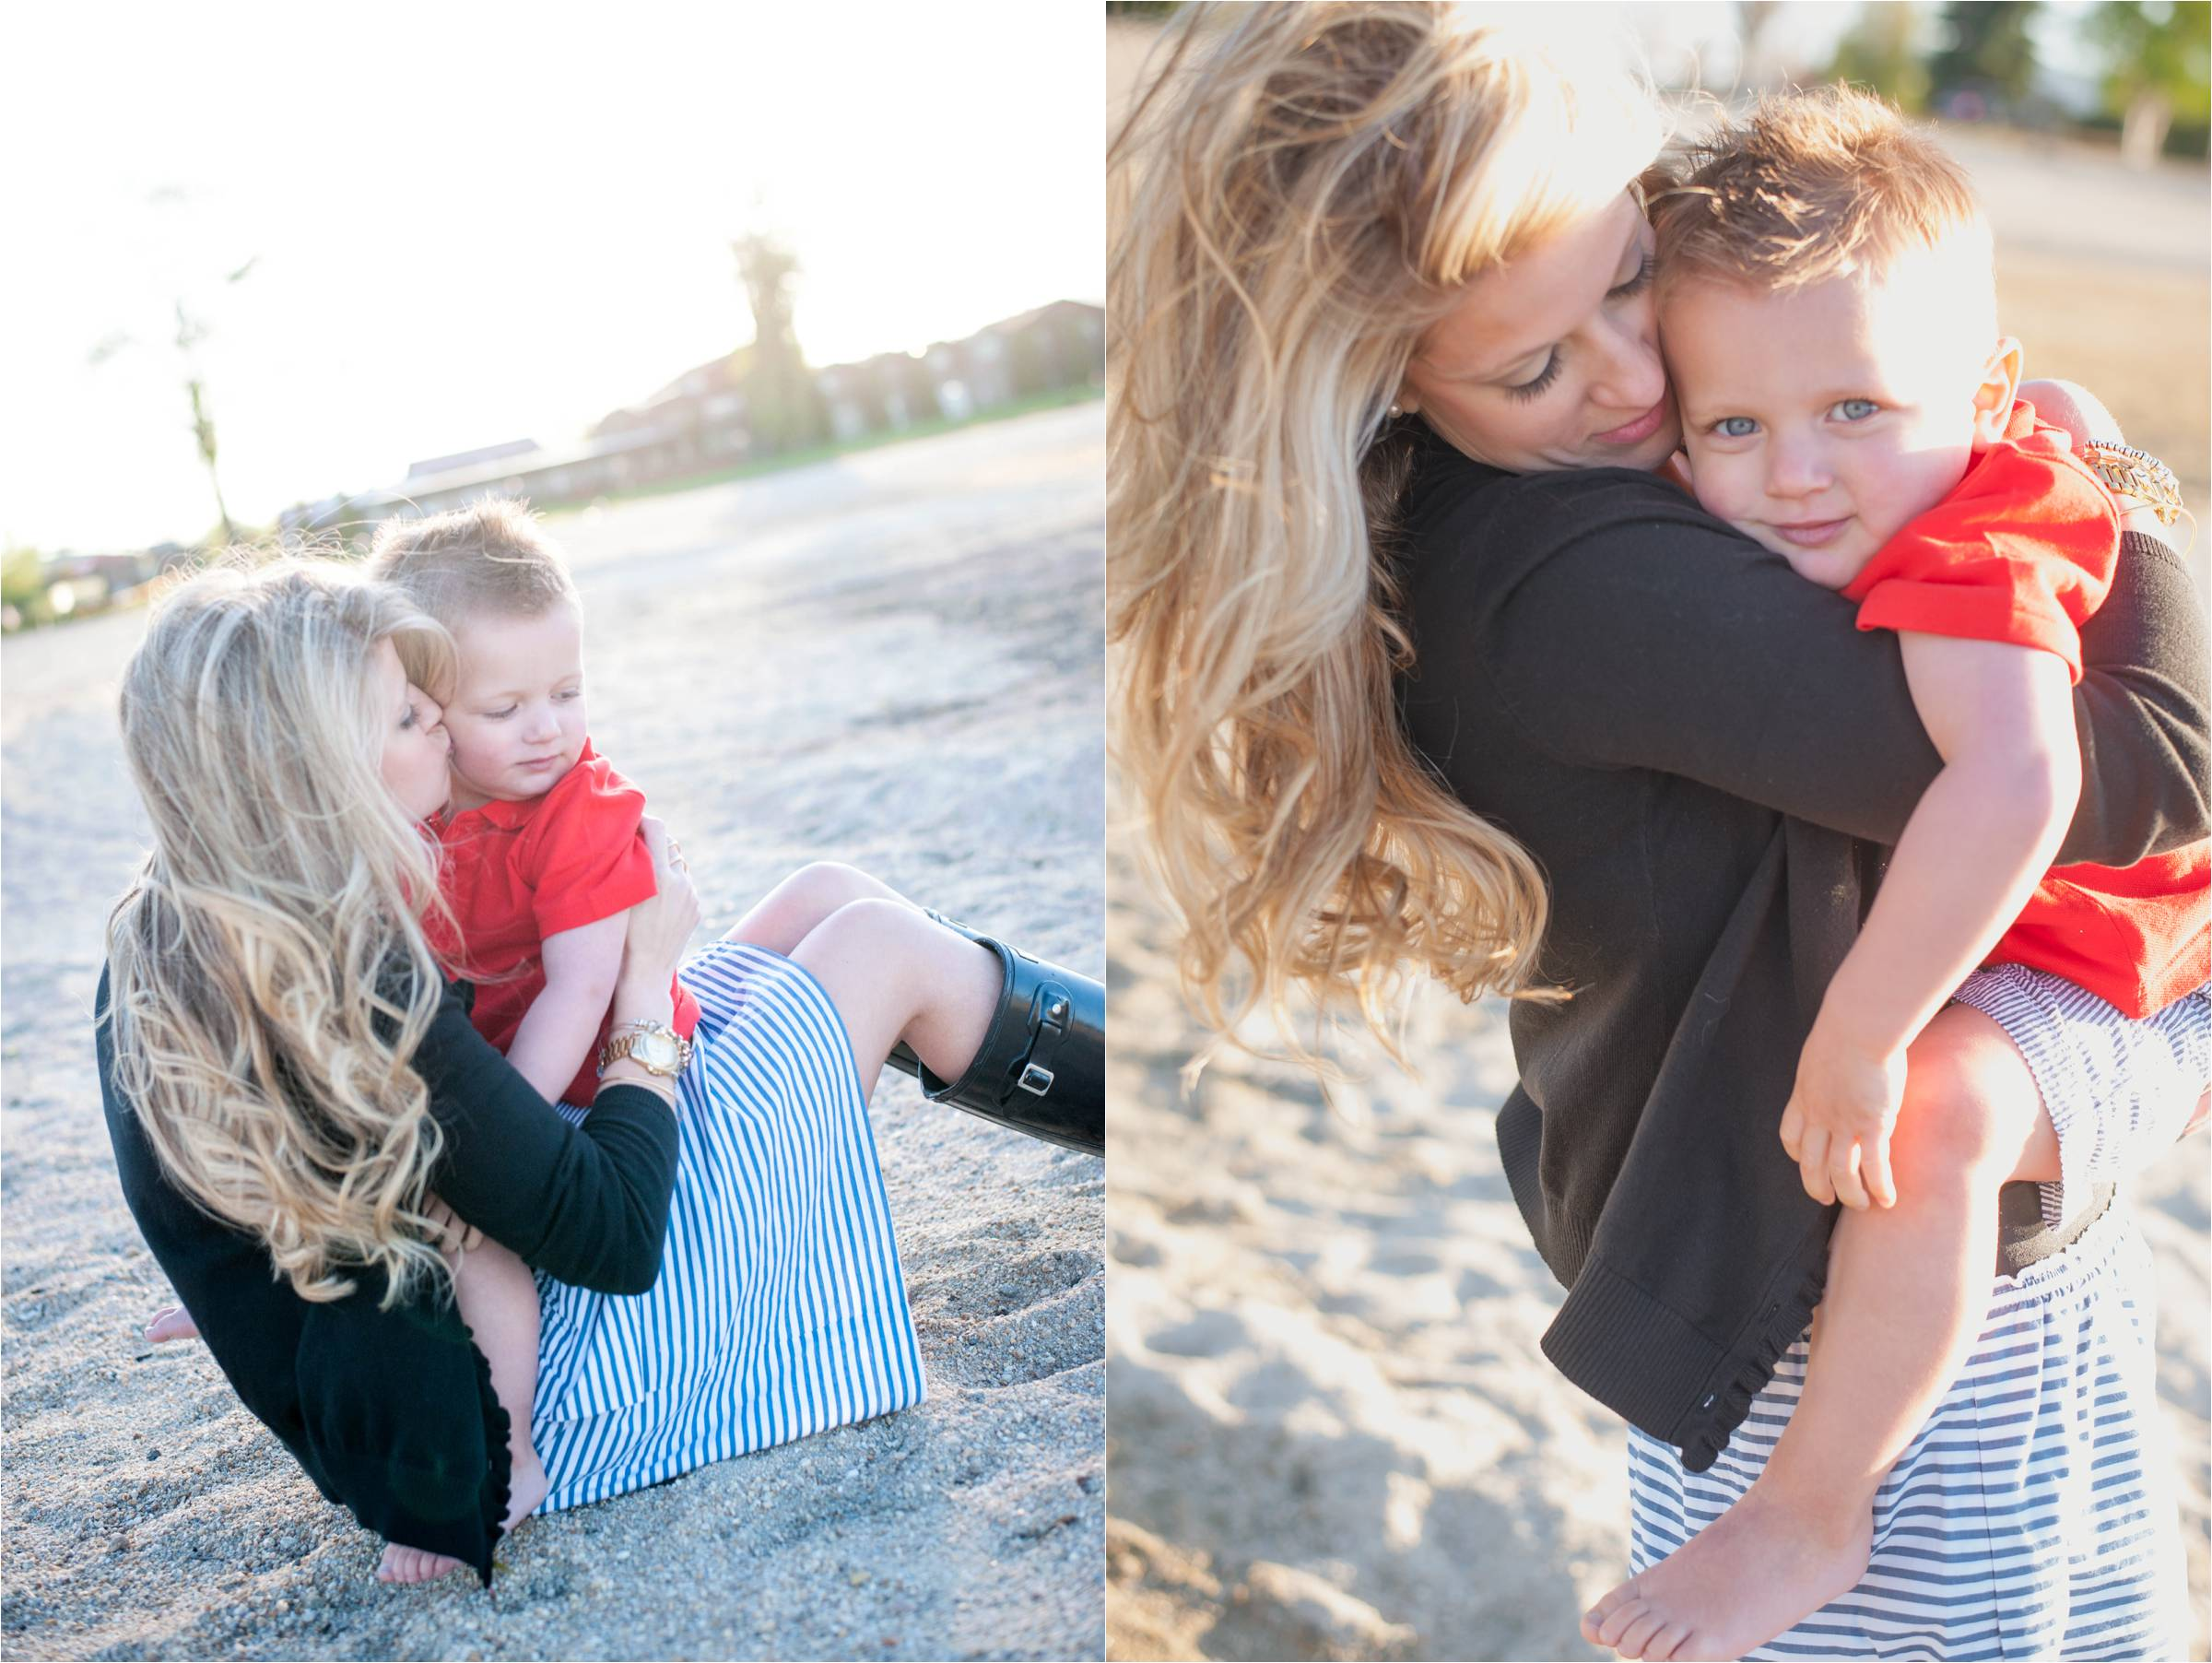 Janel-Gion-Photography-and-Design-Mommy-and-Me-Summer-Photo-Session-Sandpoint-Idaho_0016.jpg